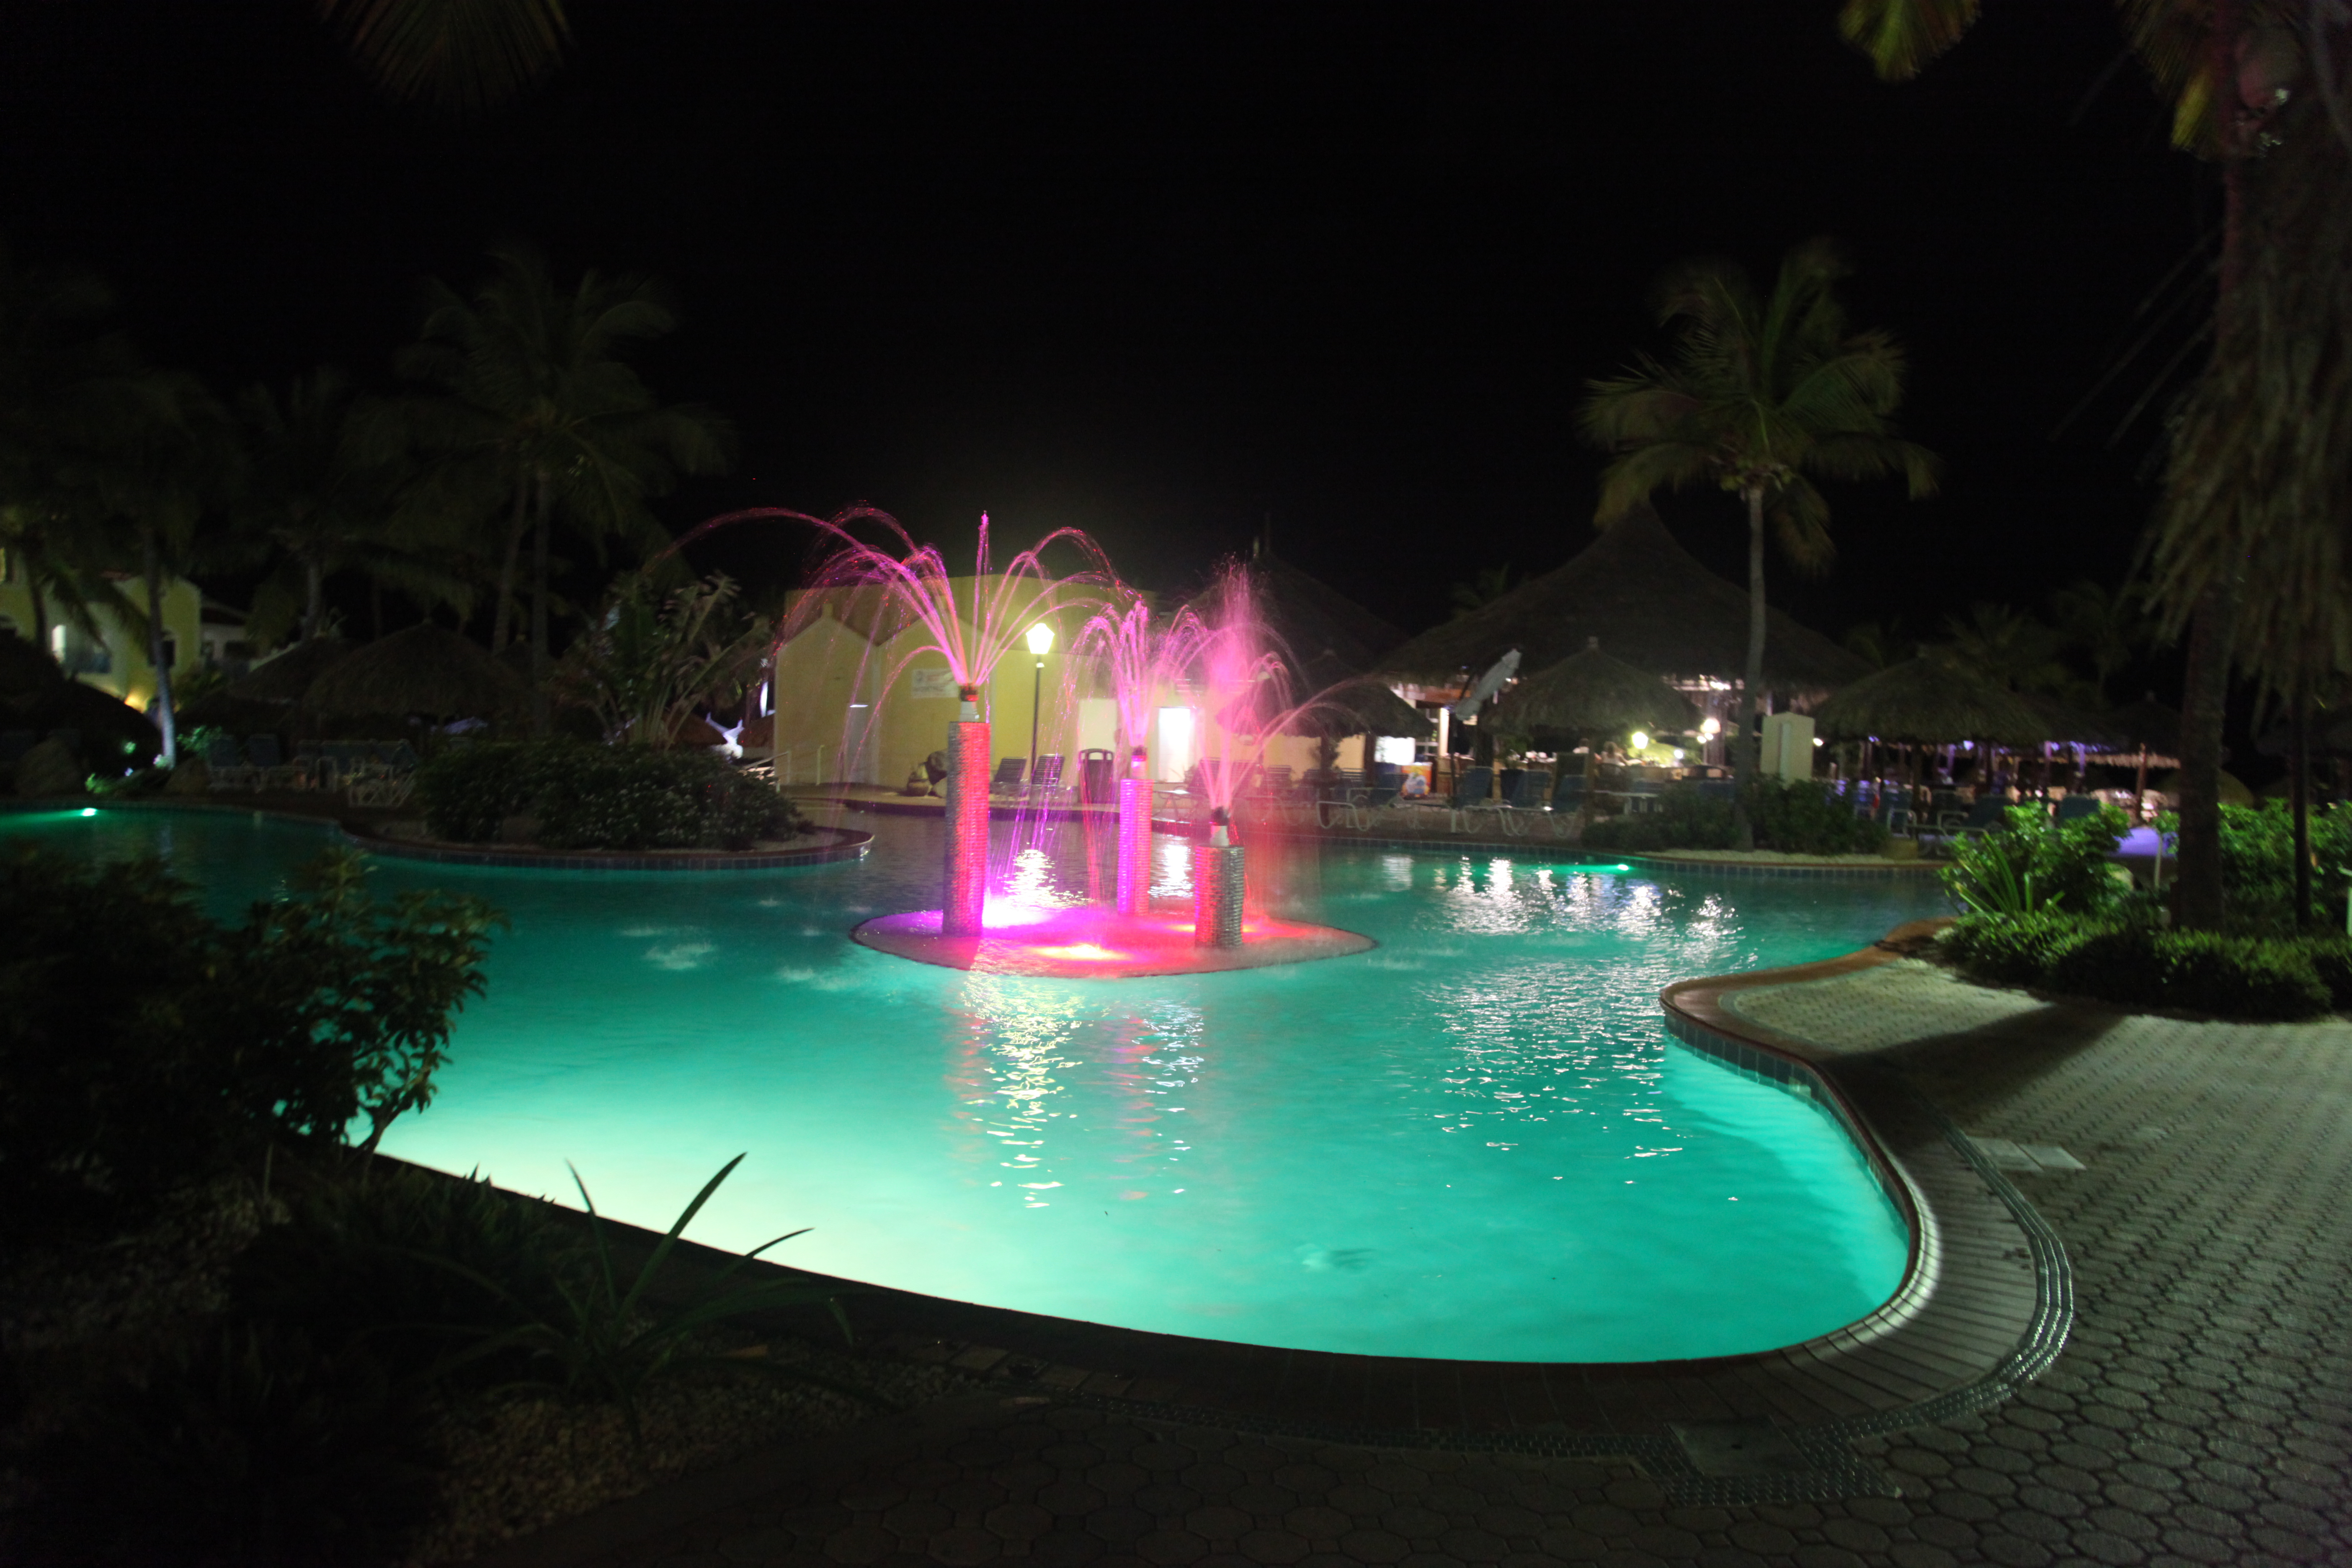 Costa Linda Pool at night